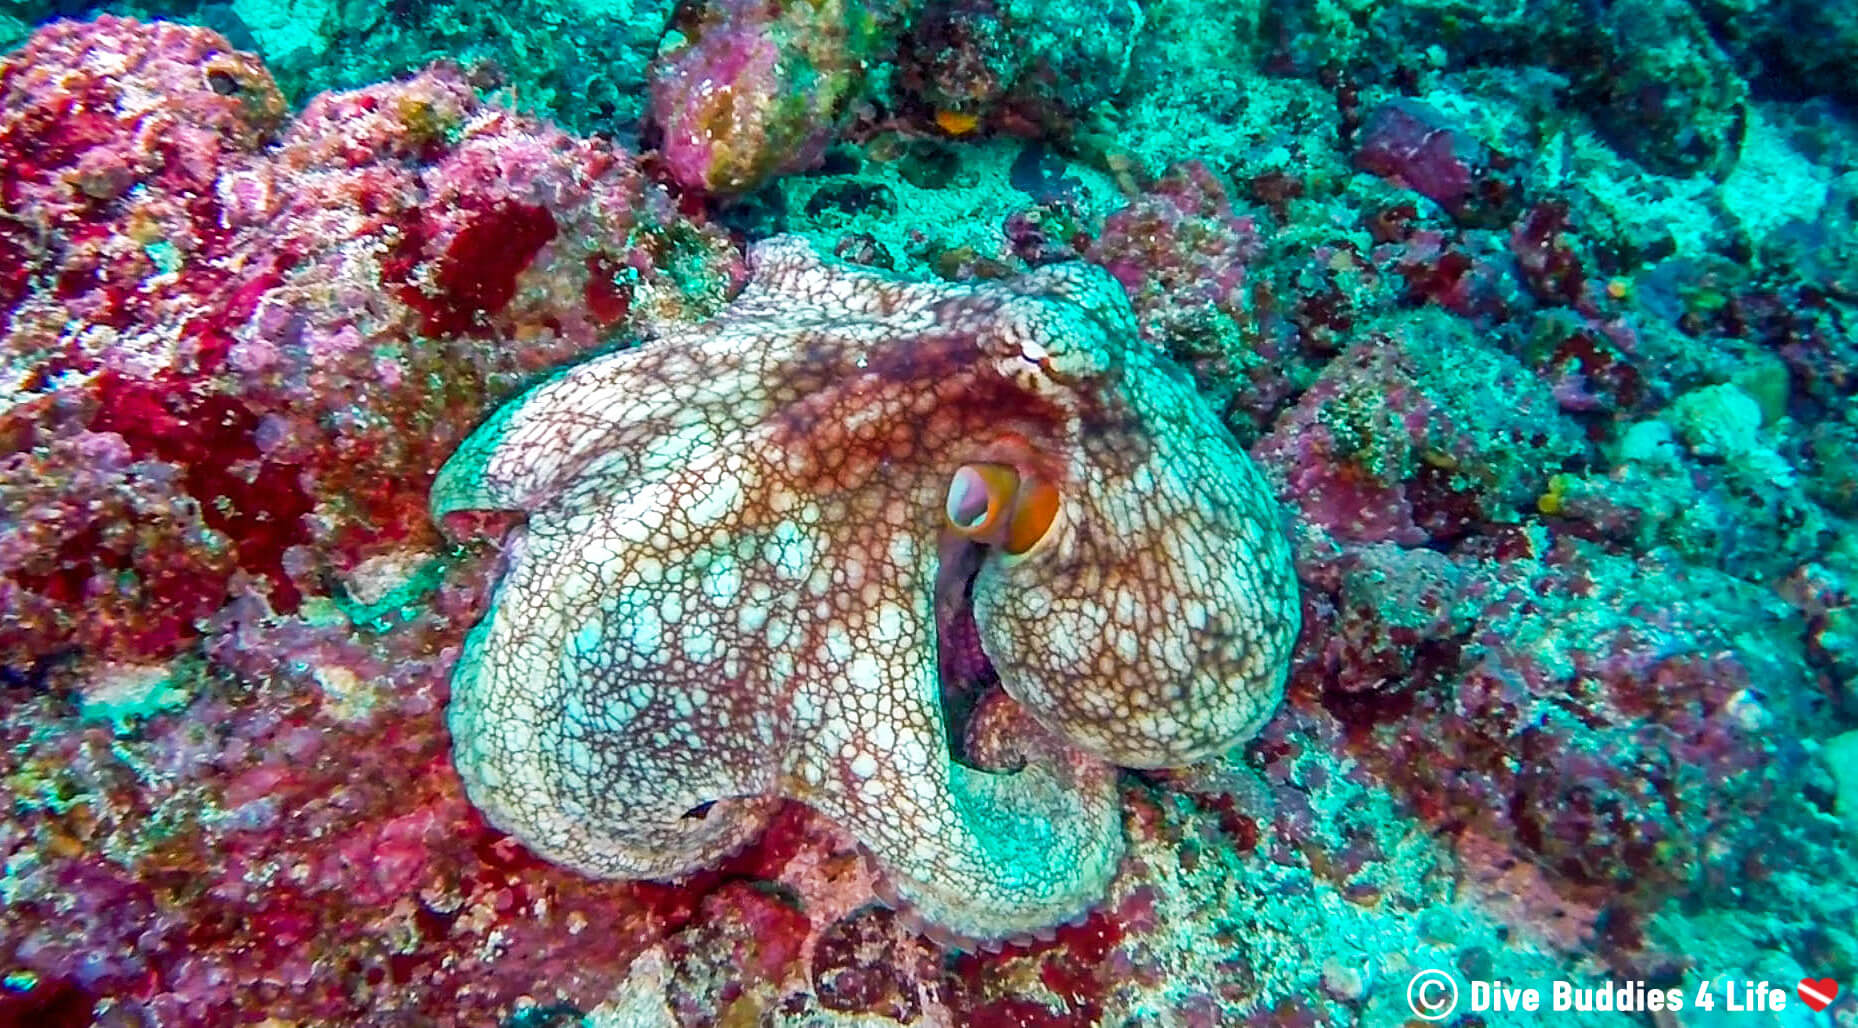 Pacific Octopus Seen While Scuba Diving At The Bat Islands In Costa Rica, Central America